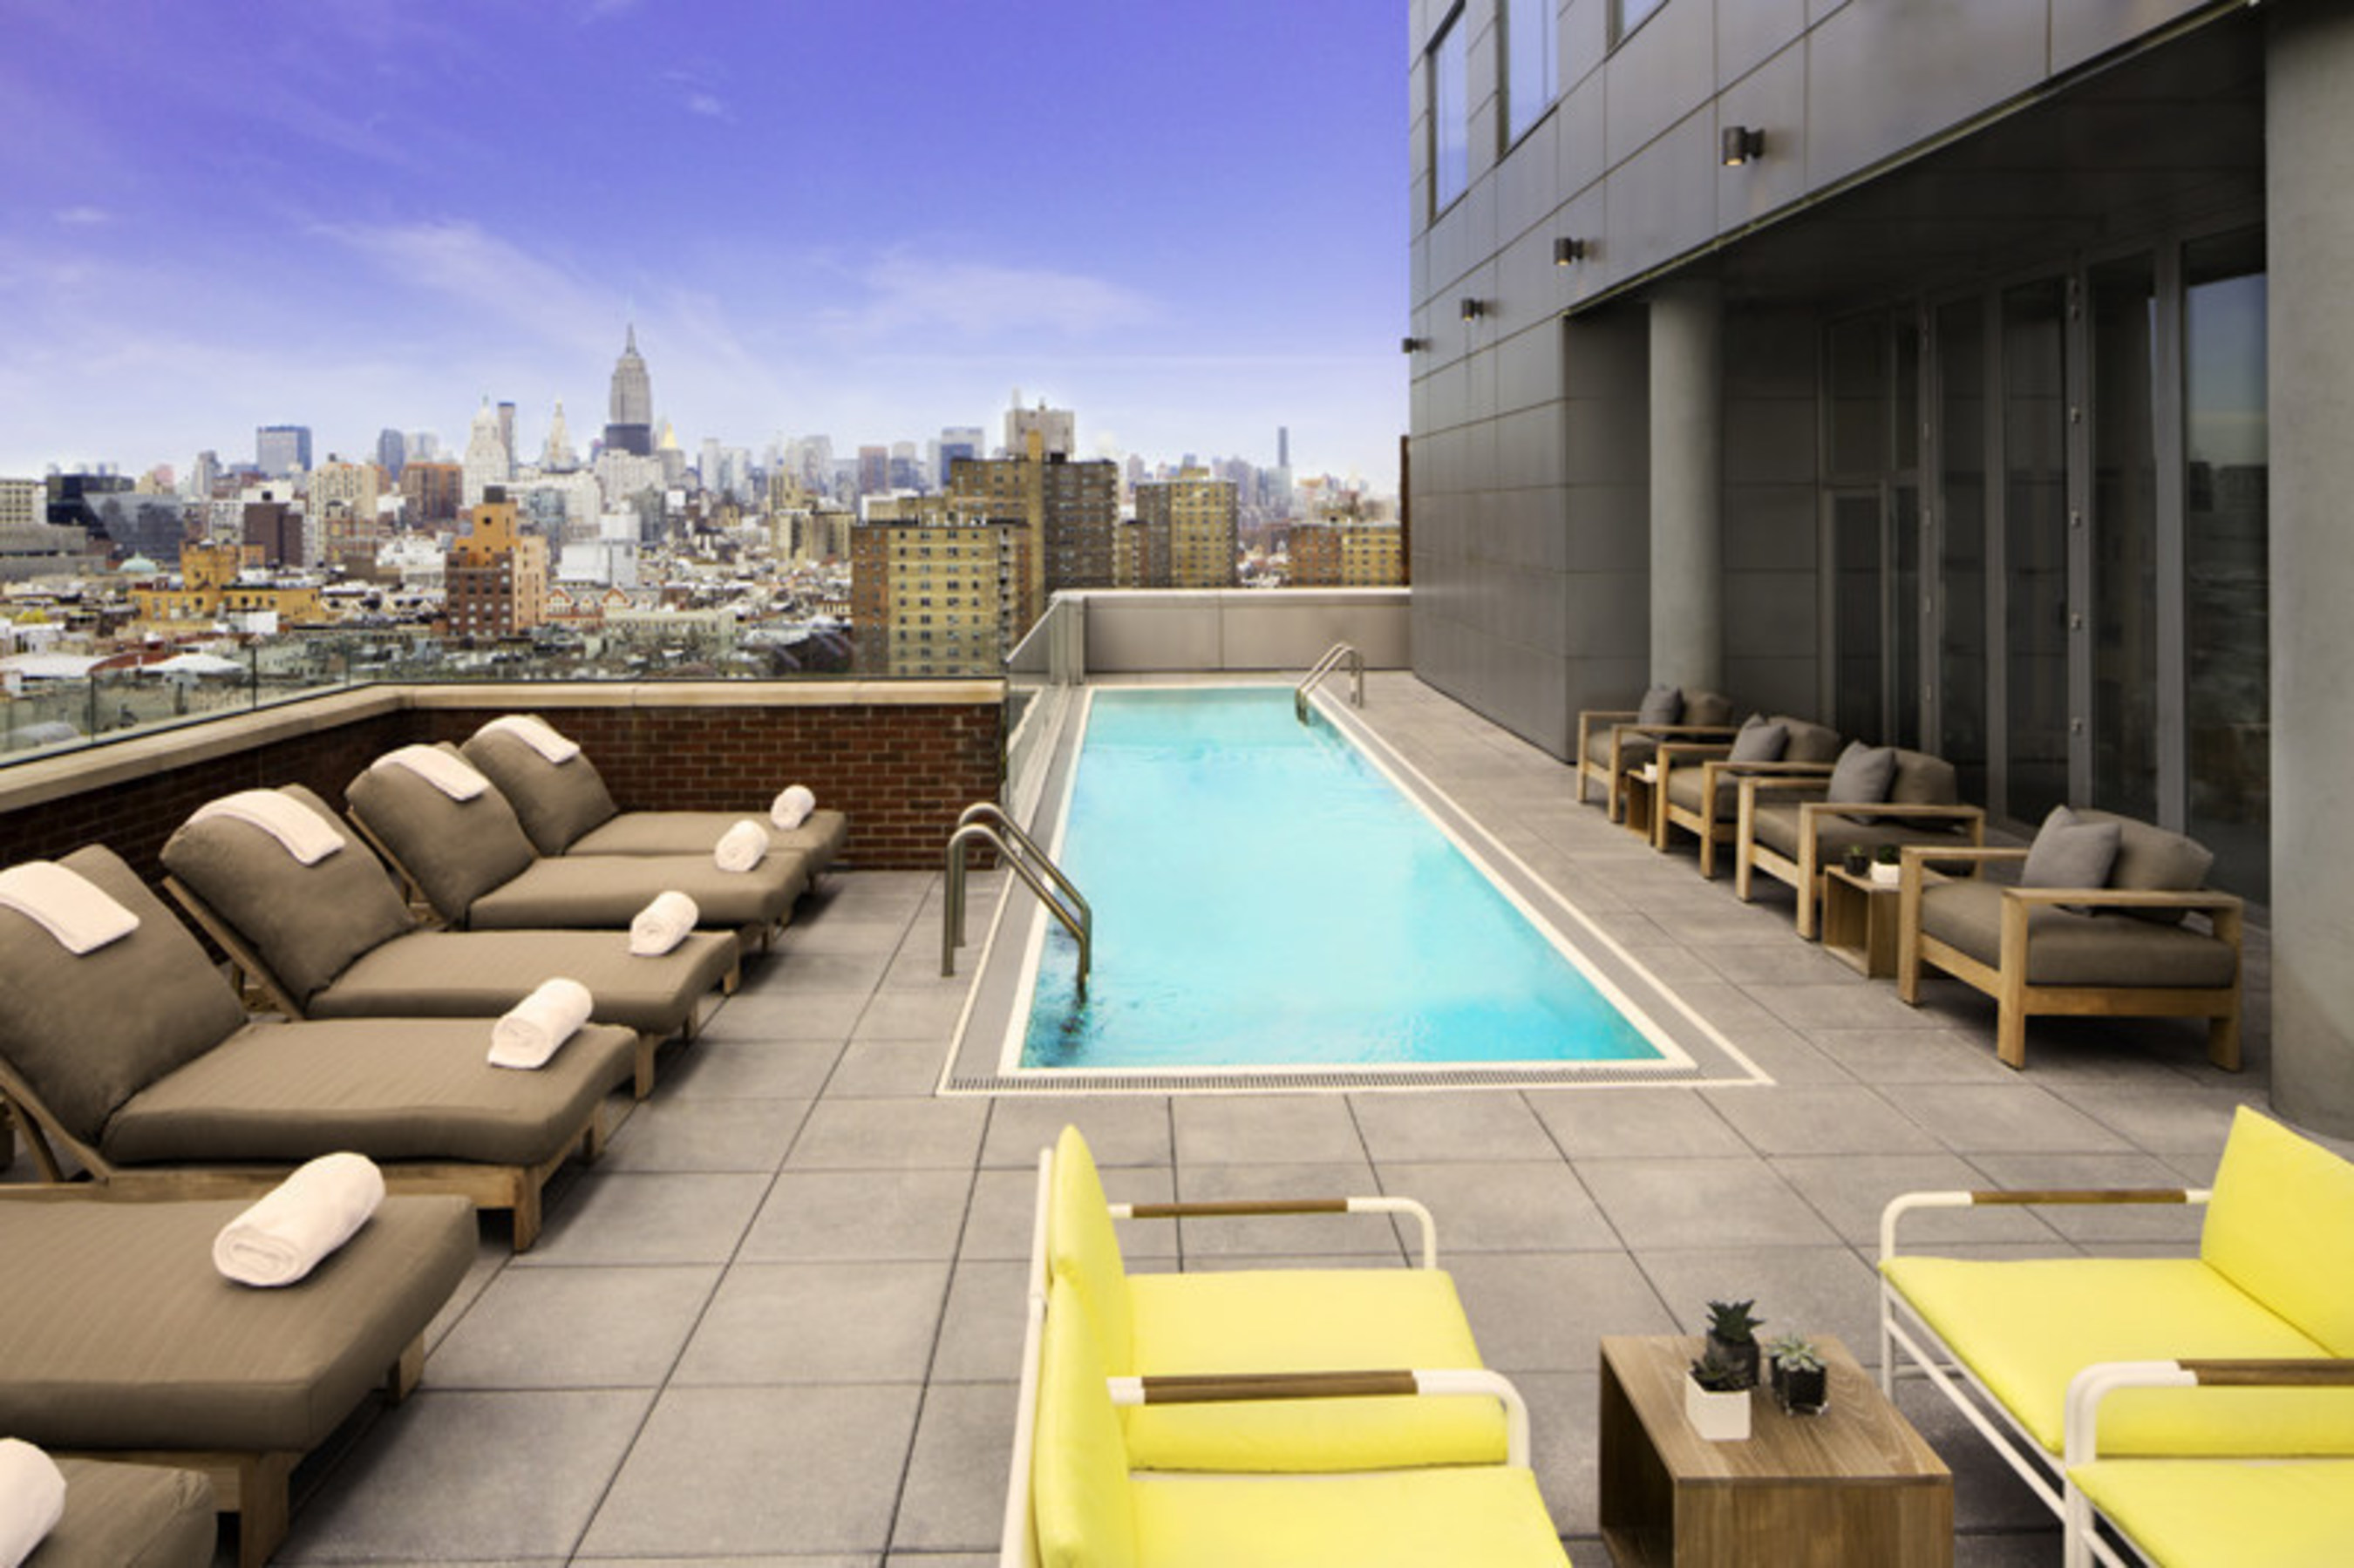 The impressive 5,000 sq. ft. terrace located on the west side of the 15th floor offers breathtaking views of Manhattan and is outfitted with its own swimming pool, bar and a variety of seating options - providing the perfect backdrop to enjoy locally crafted cocktails from the hotel's rooftop bar & restaurant, Mr. Purple.